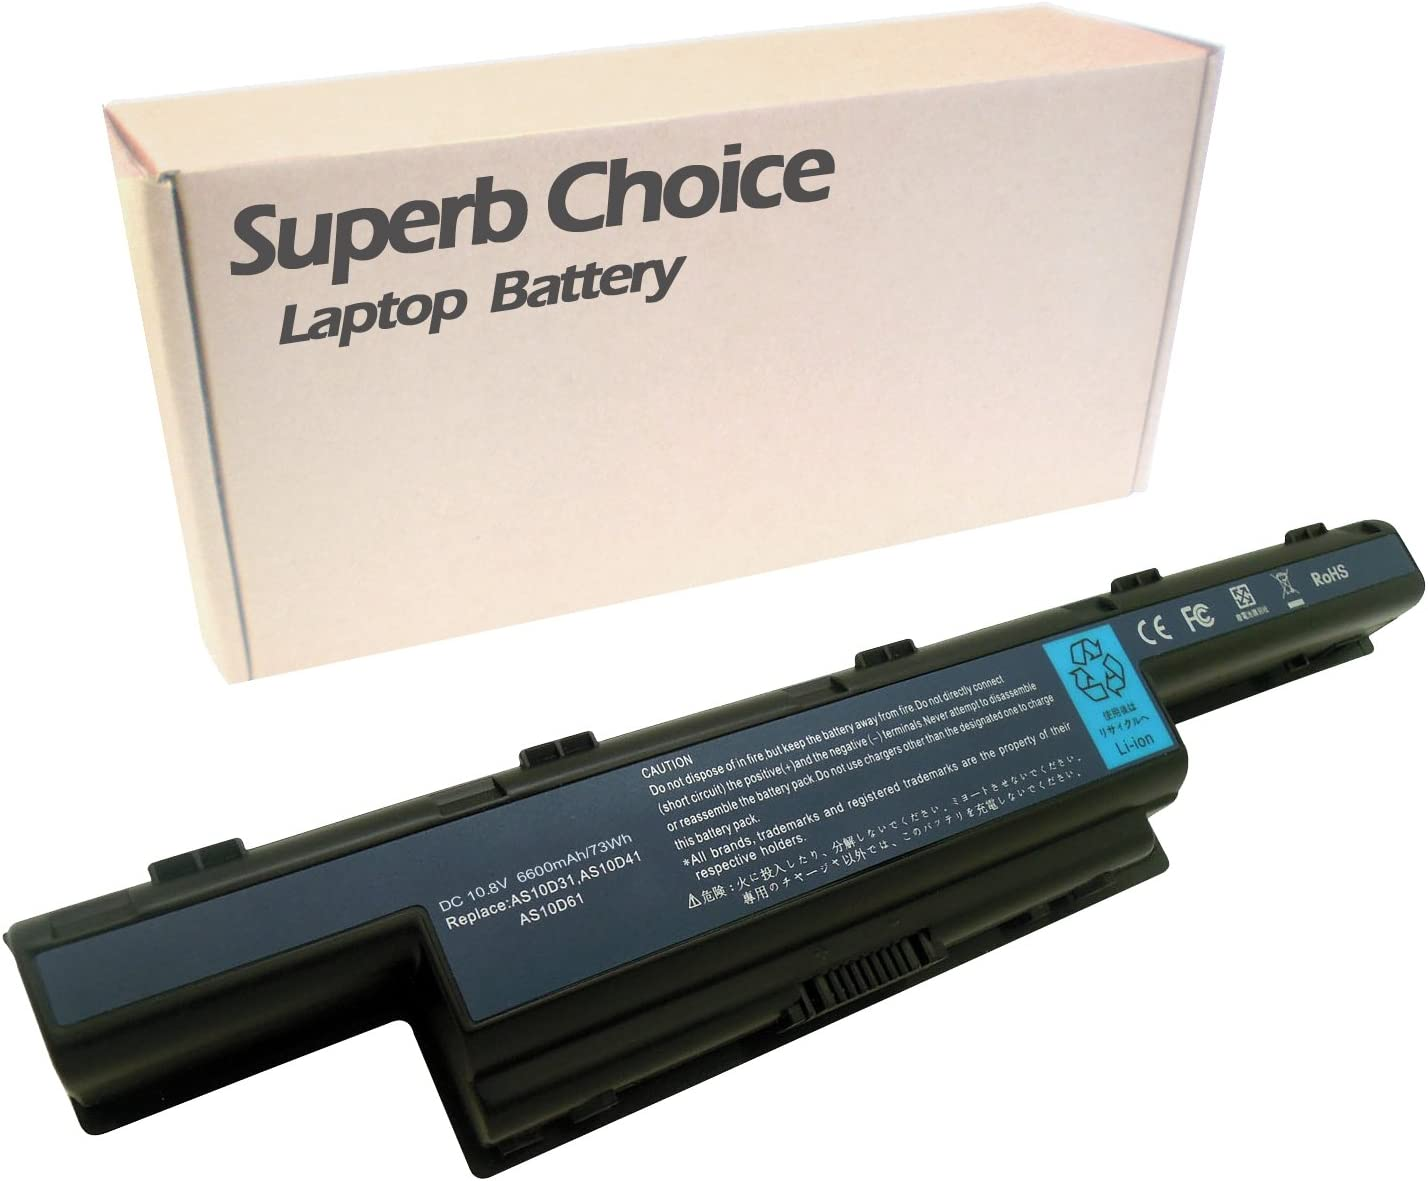 Superb Choice 9-Cell Battery Compatible with Acer Aspire 5742G 7741Z 7741Z-4475 7741Z-4592